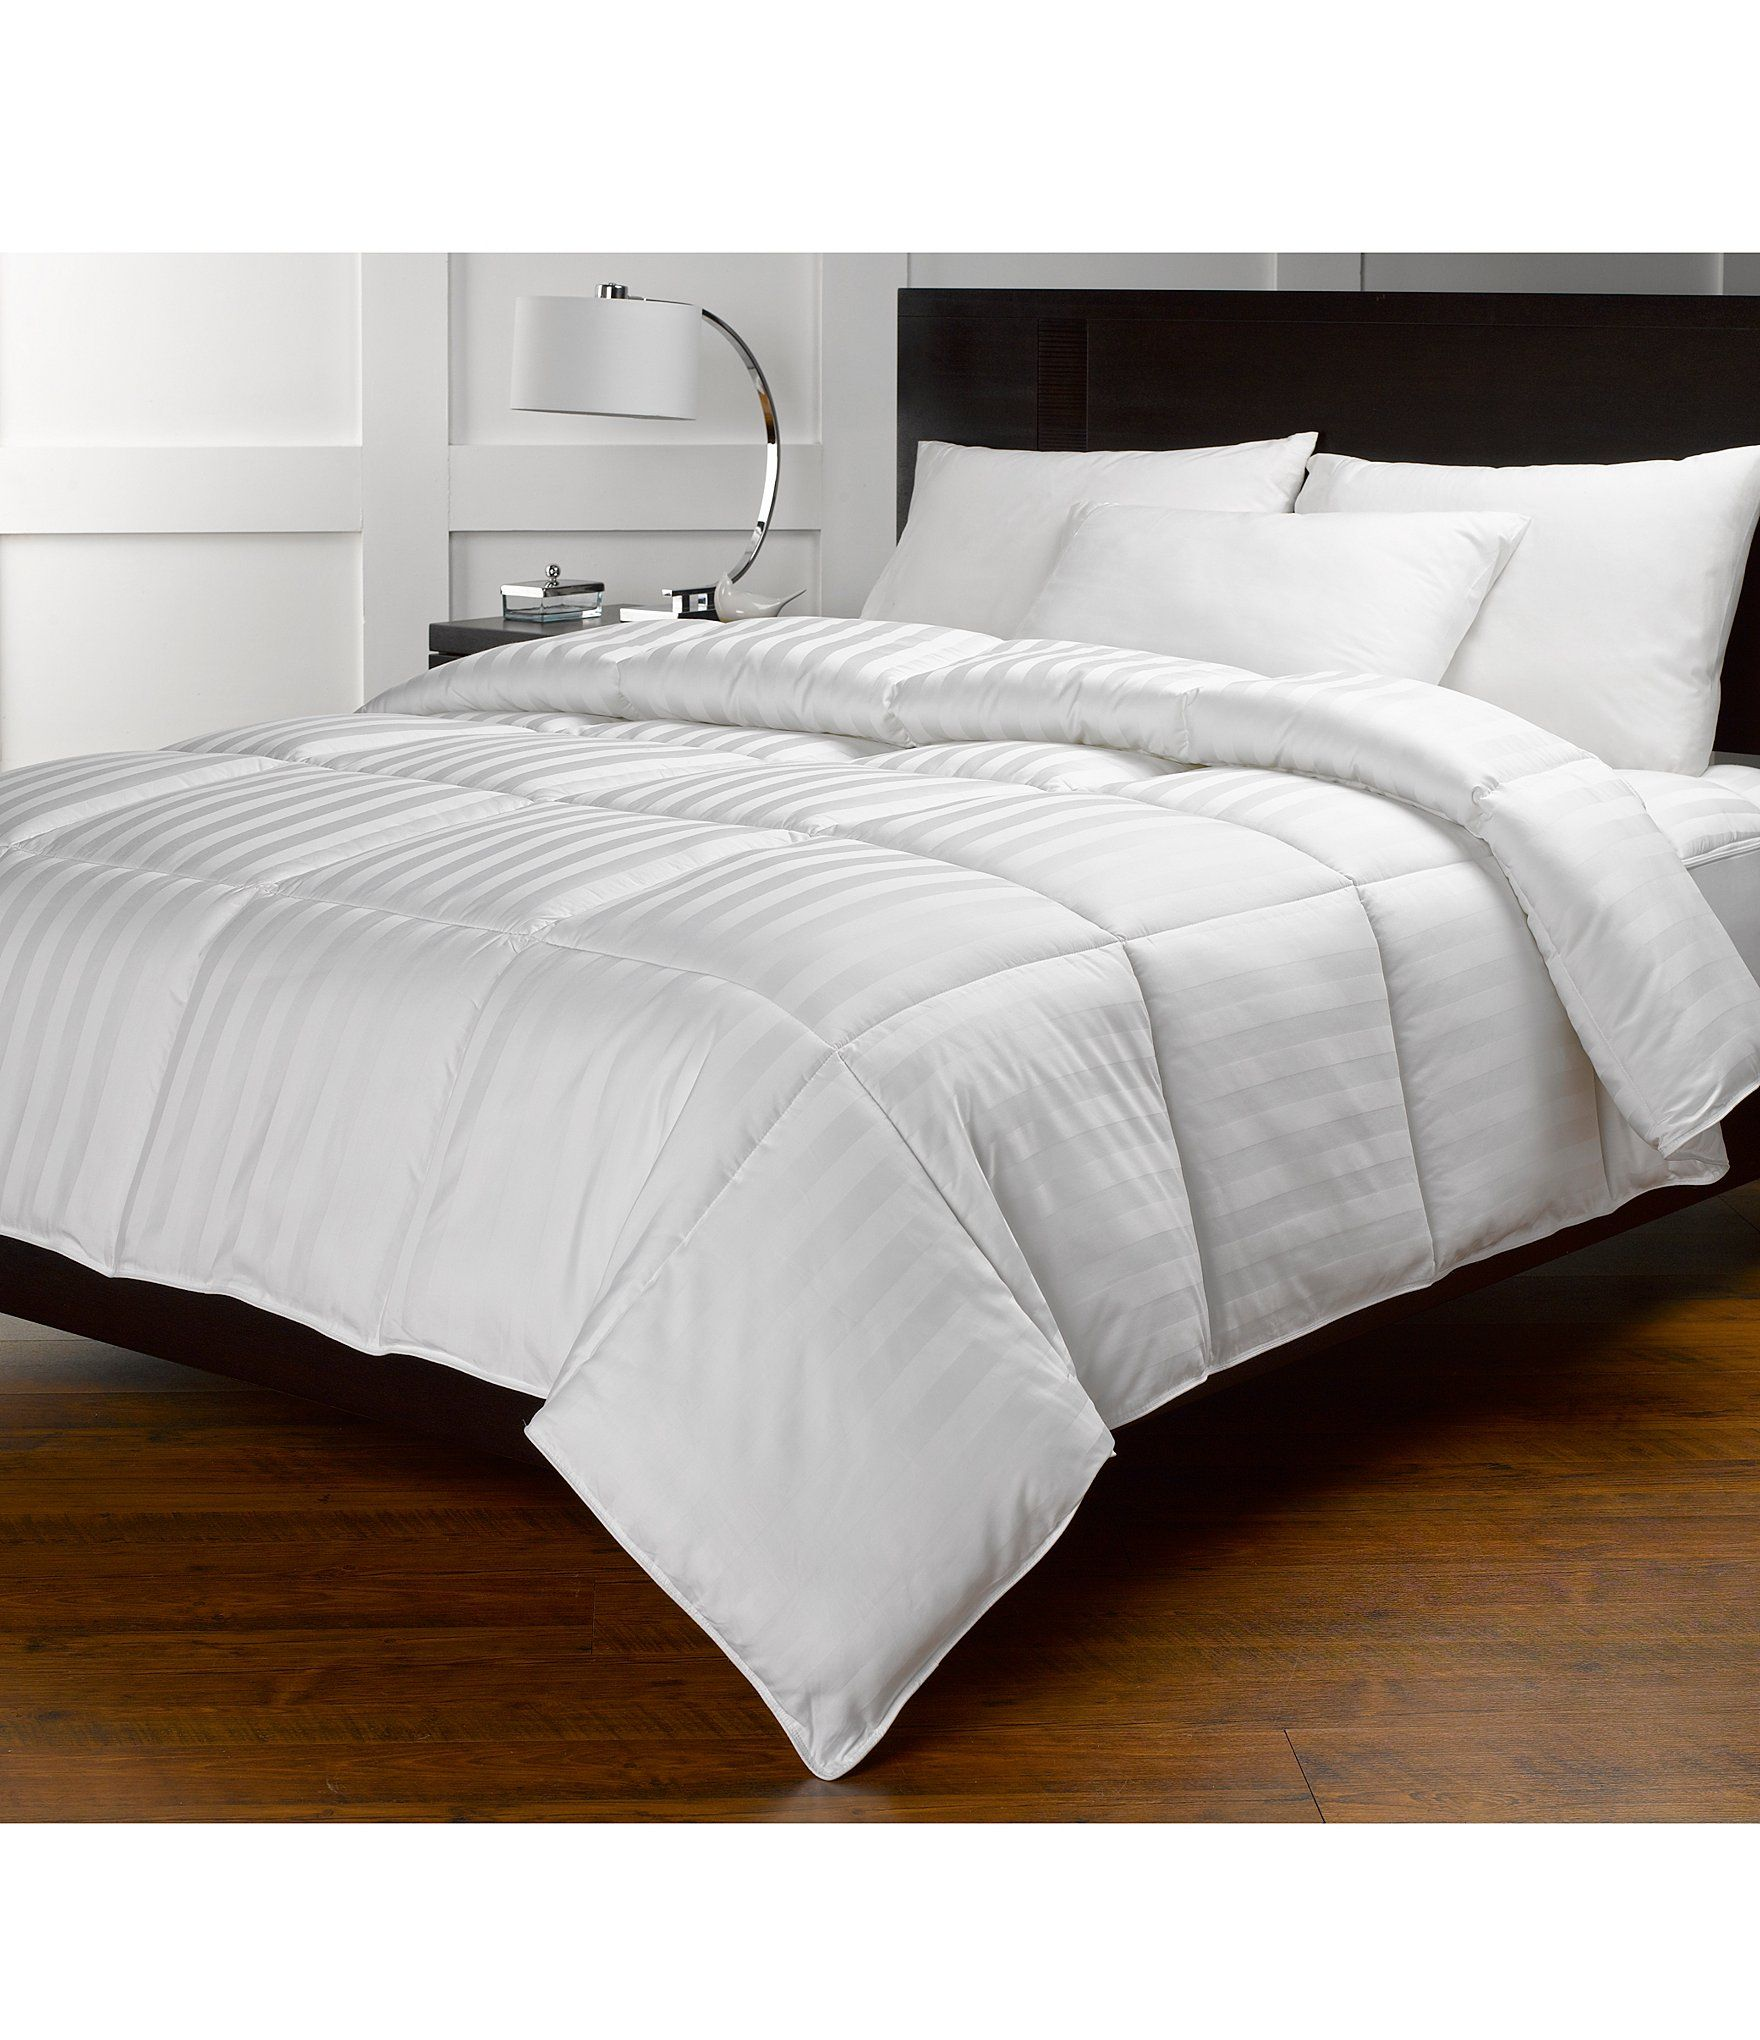 Noble Excellence Lightweight Warmth Down Alternative Comforter